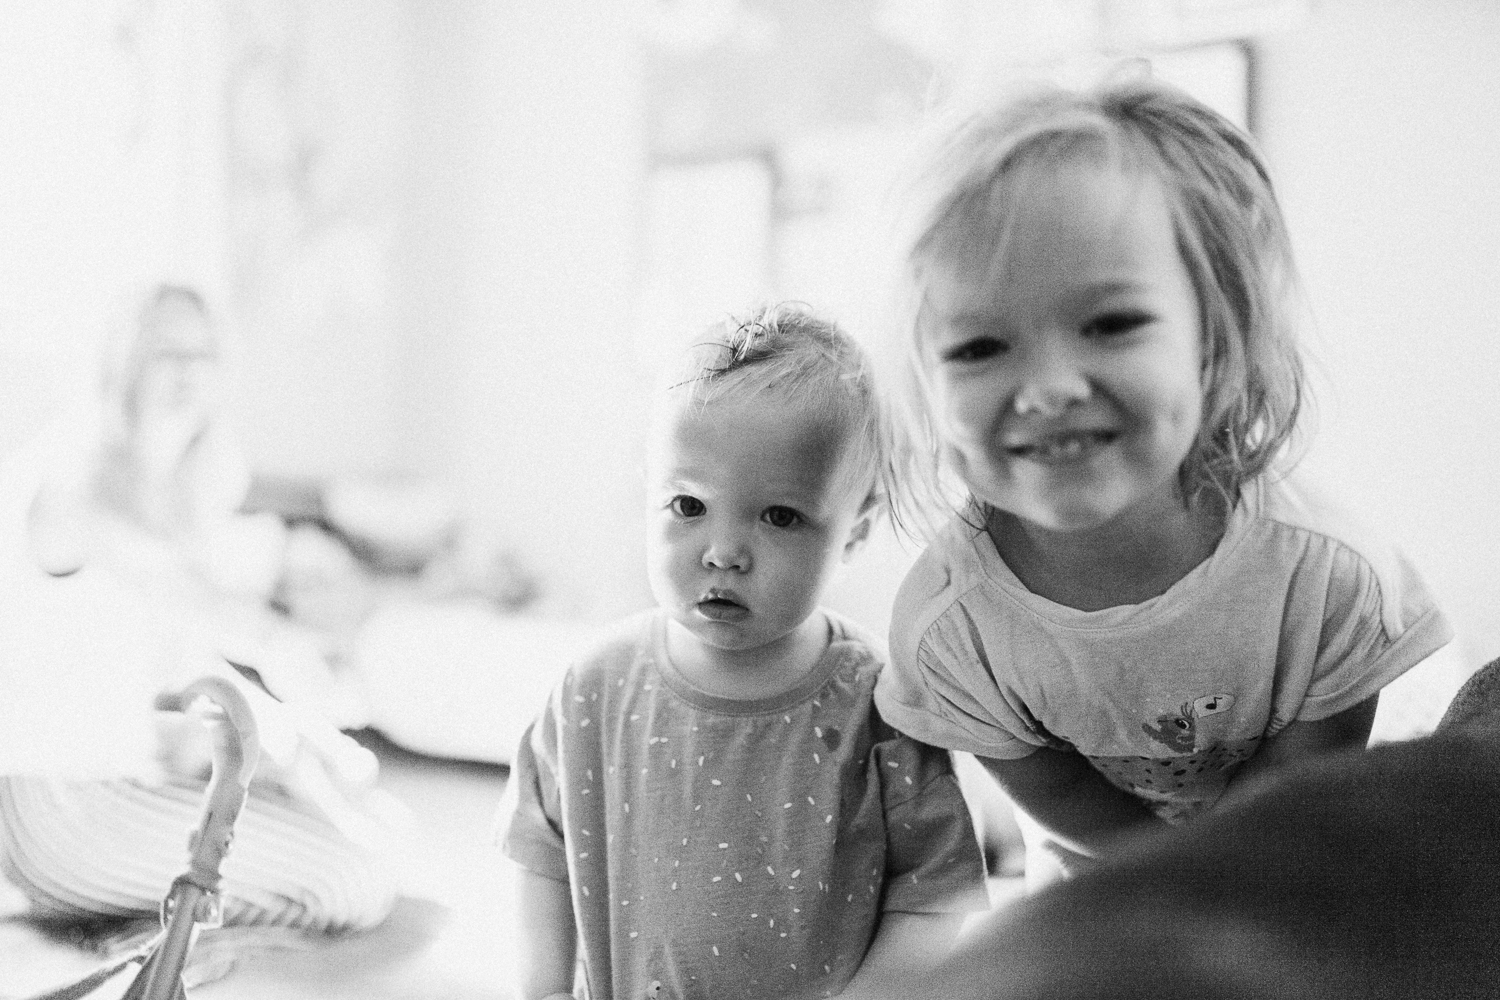 candid-black-and-white-photo-little-girls-looking-at-camera-with-binky-during-in-home-session-with-jen-fairchild-in-salt-lake-city-utah